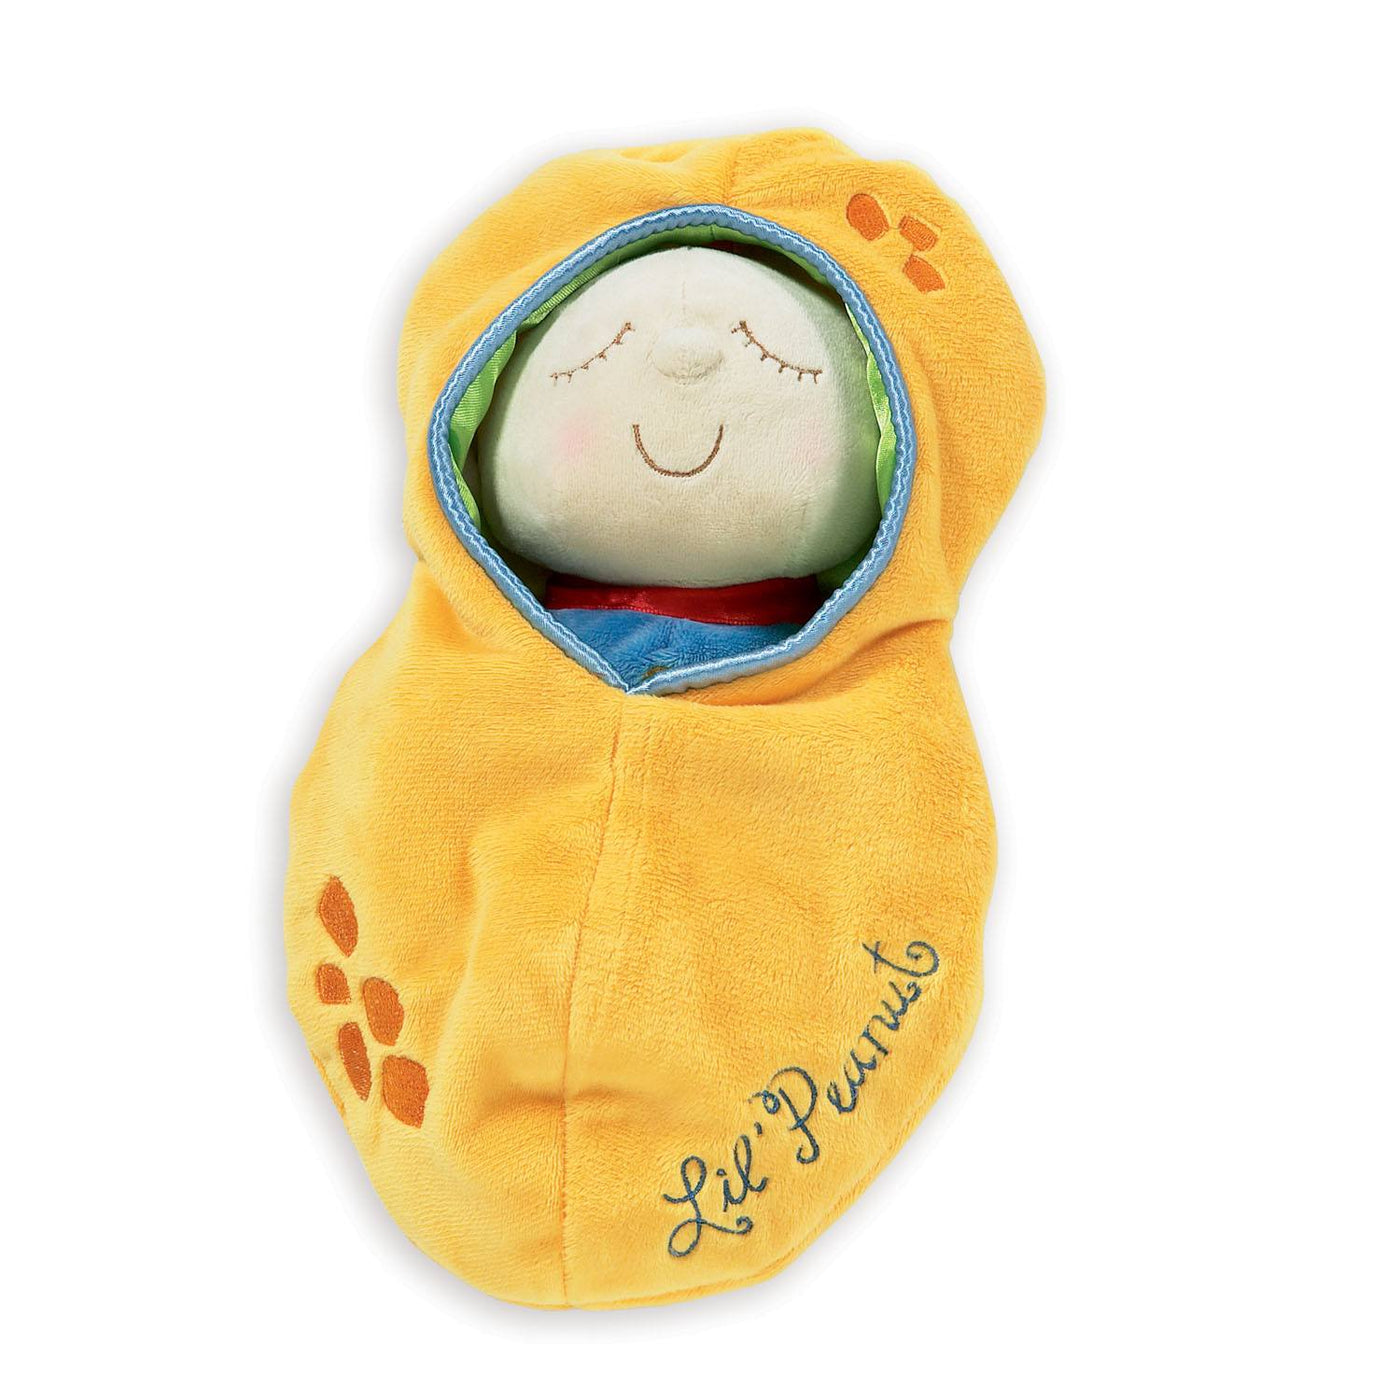 Snuggle Pods Lil' Peanut - Manhattan Toy